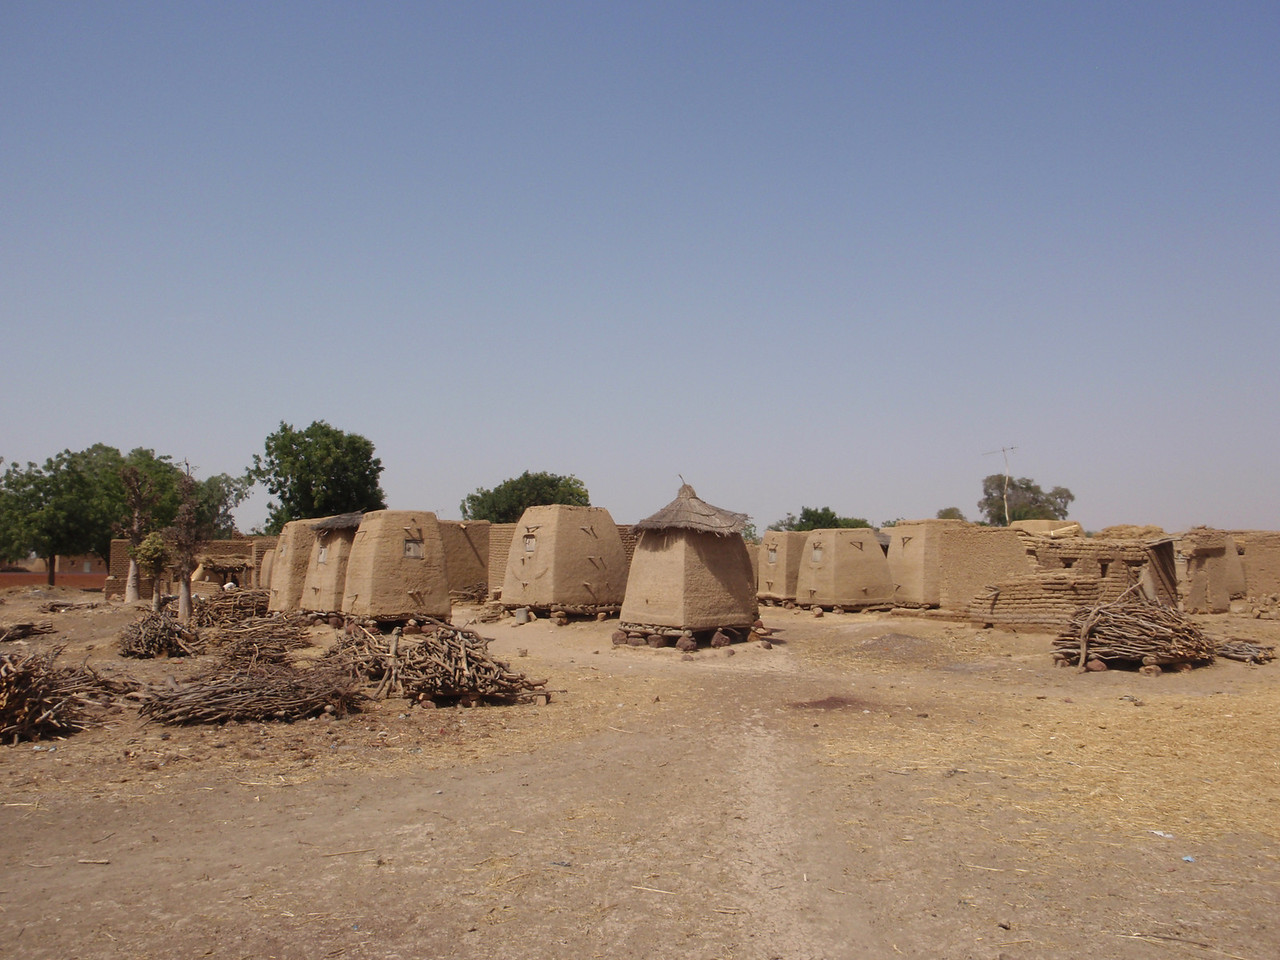 214_Parandougou  Granaries on Raised Legs to Protect from Vernin